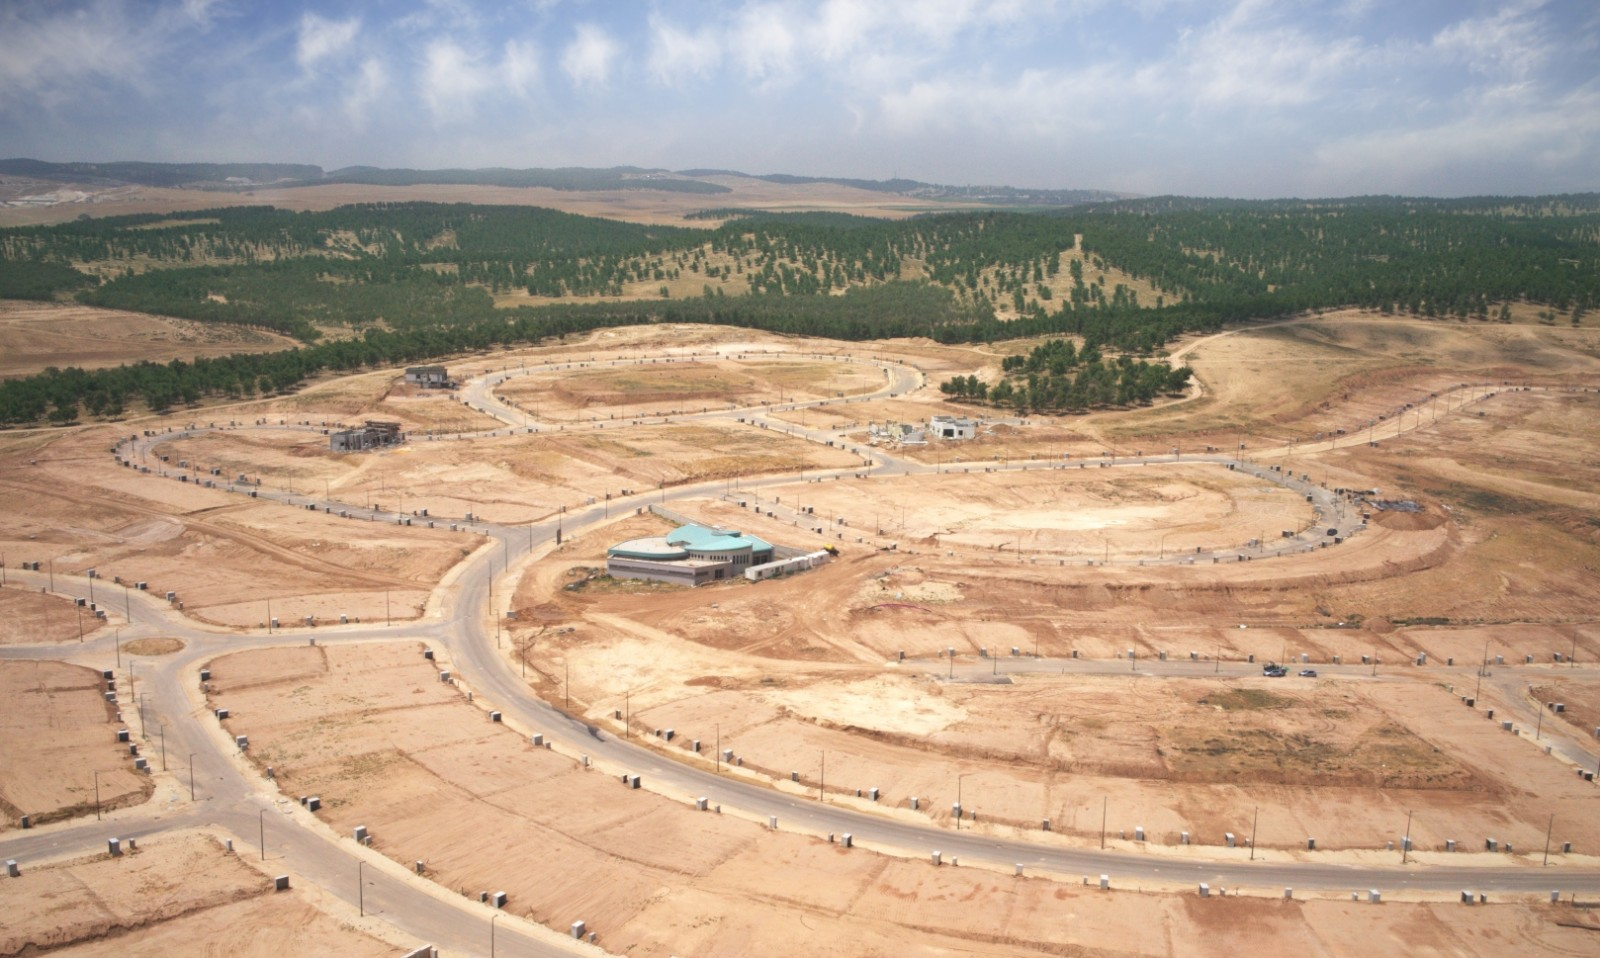 Undeveloped land in the Negev is plentiful. Photo courtesy of OR Movement